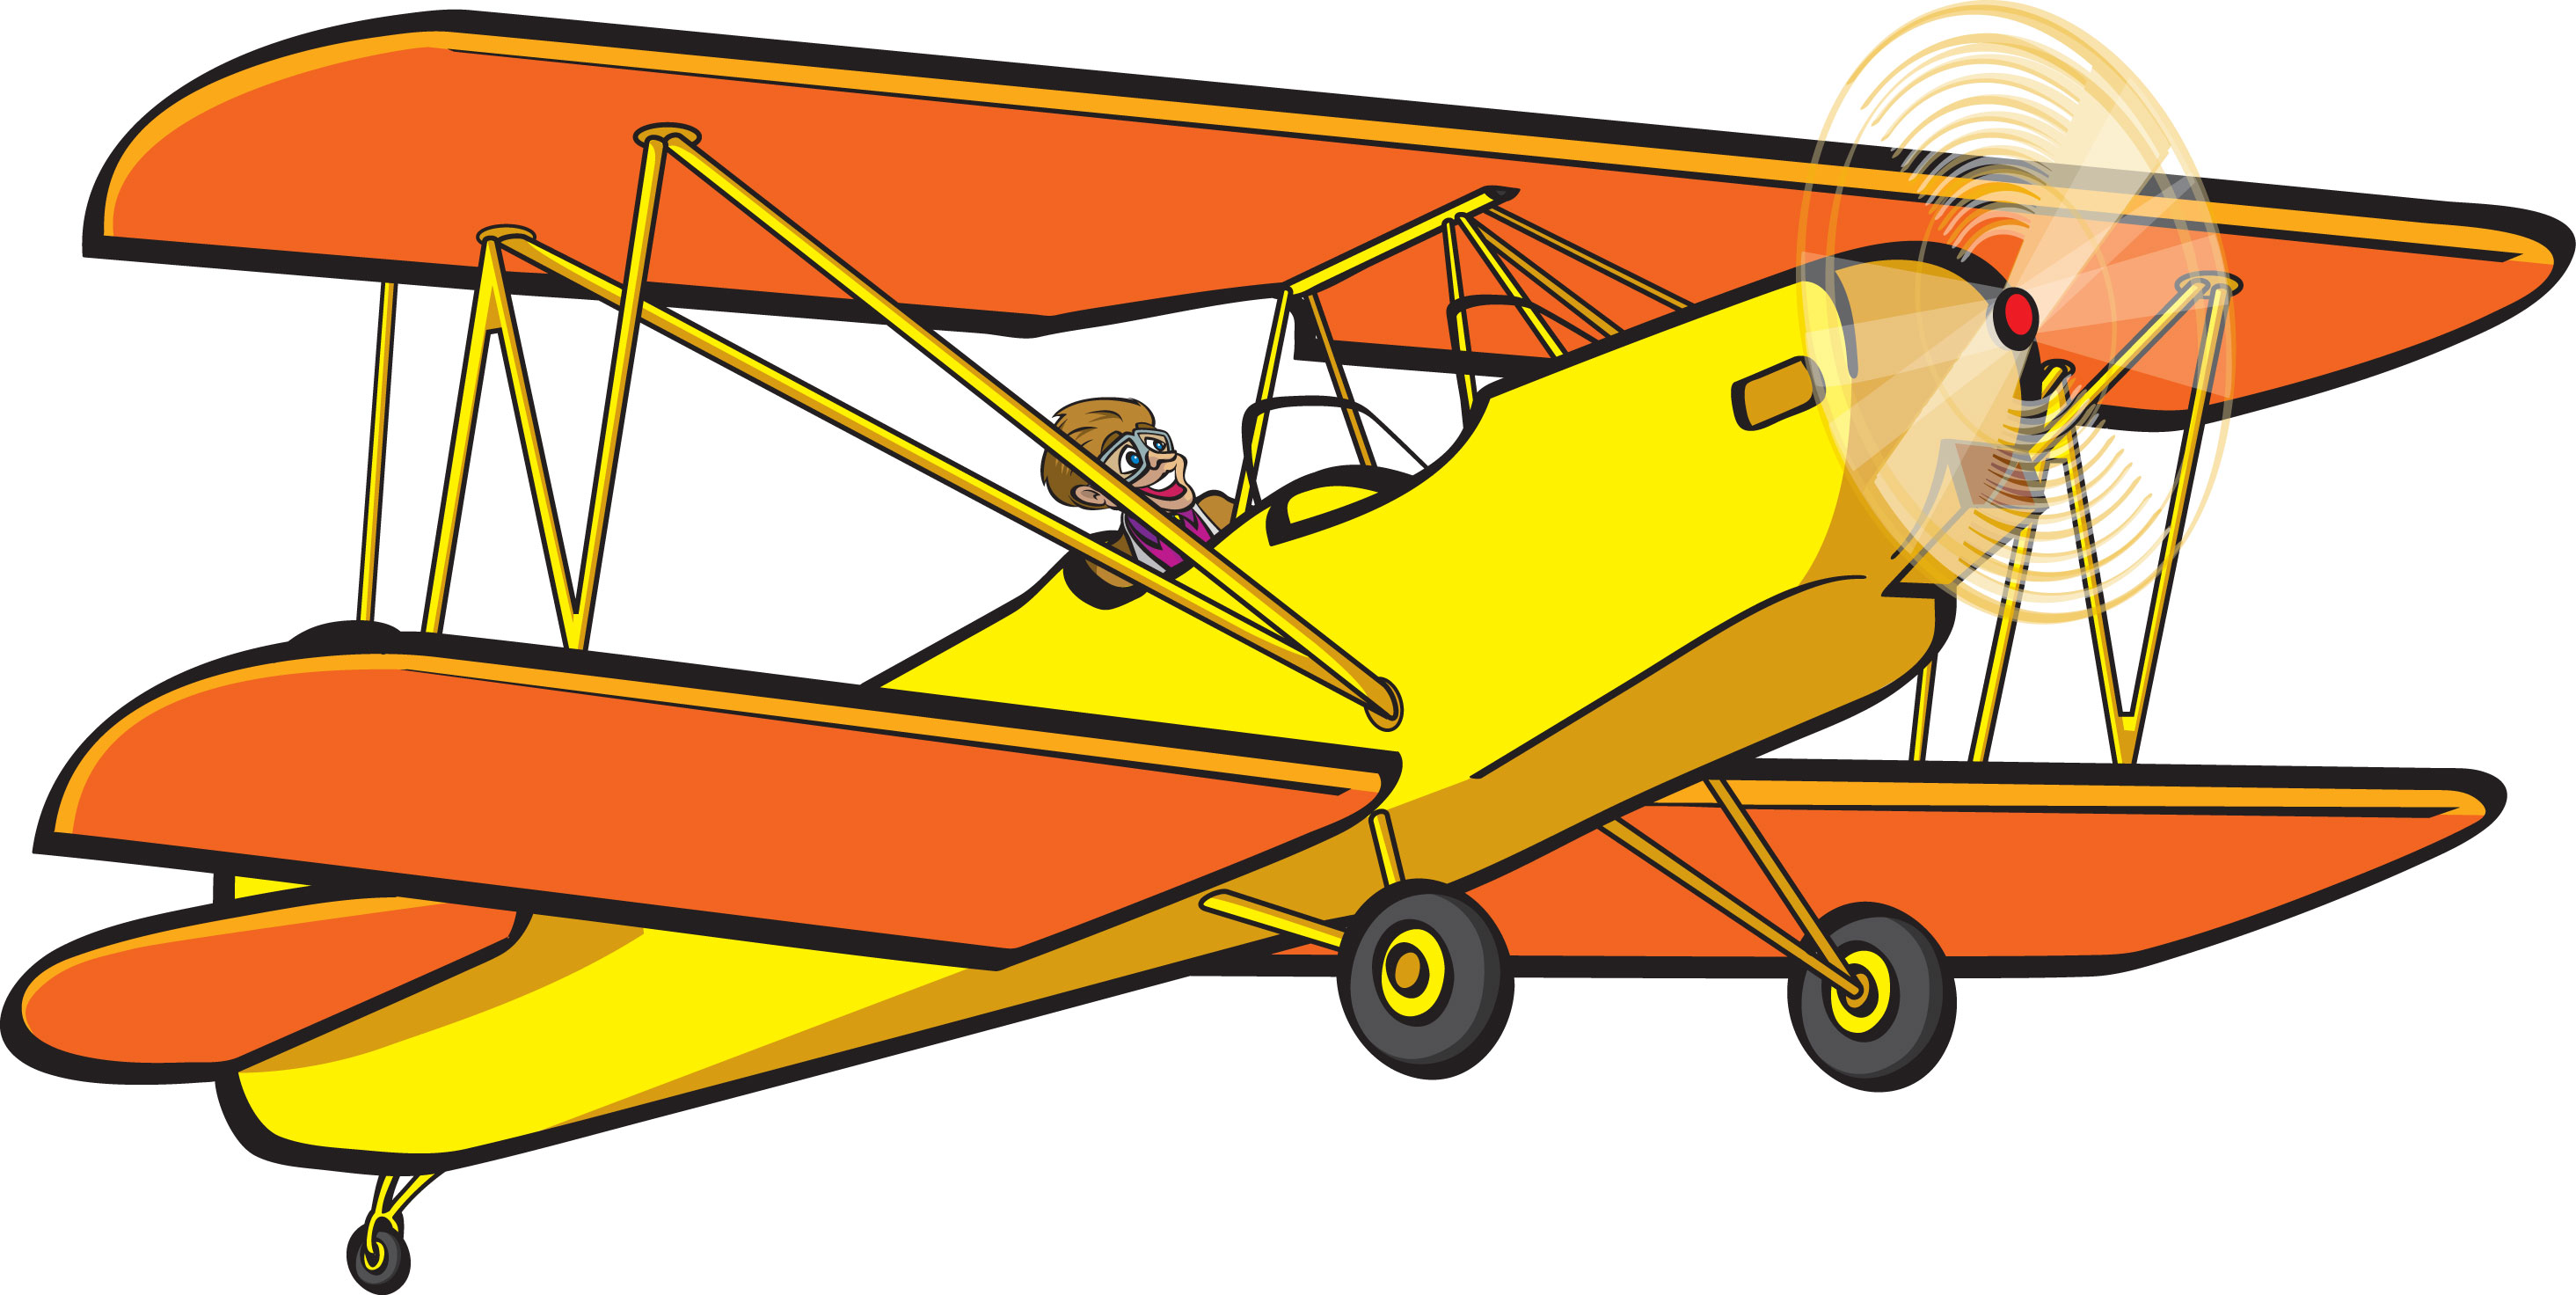 Airplane clipart biplane Clipartoons Clipart Image Art Biplane